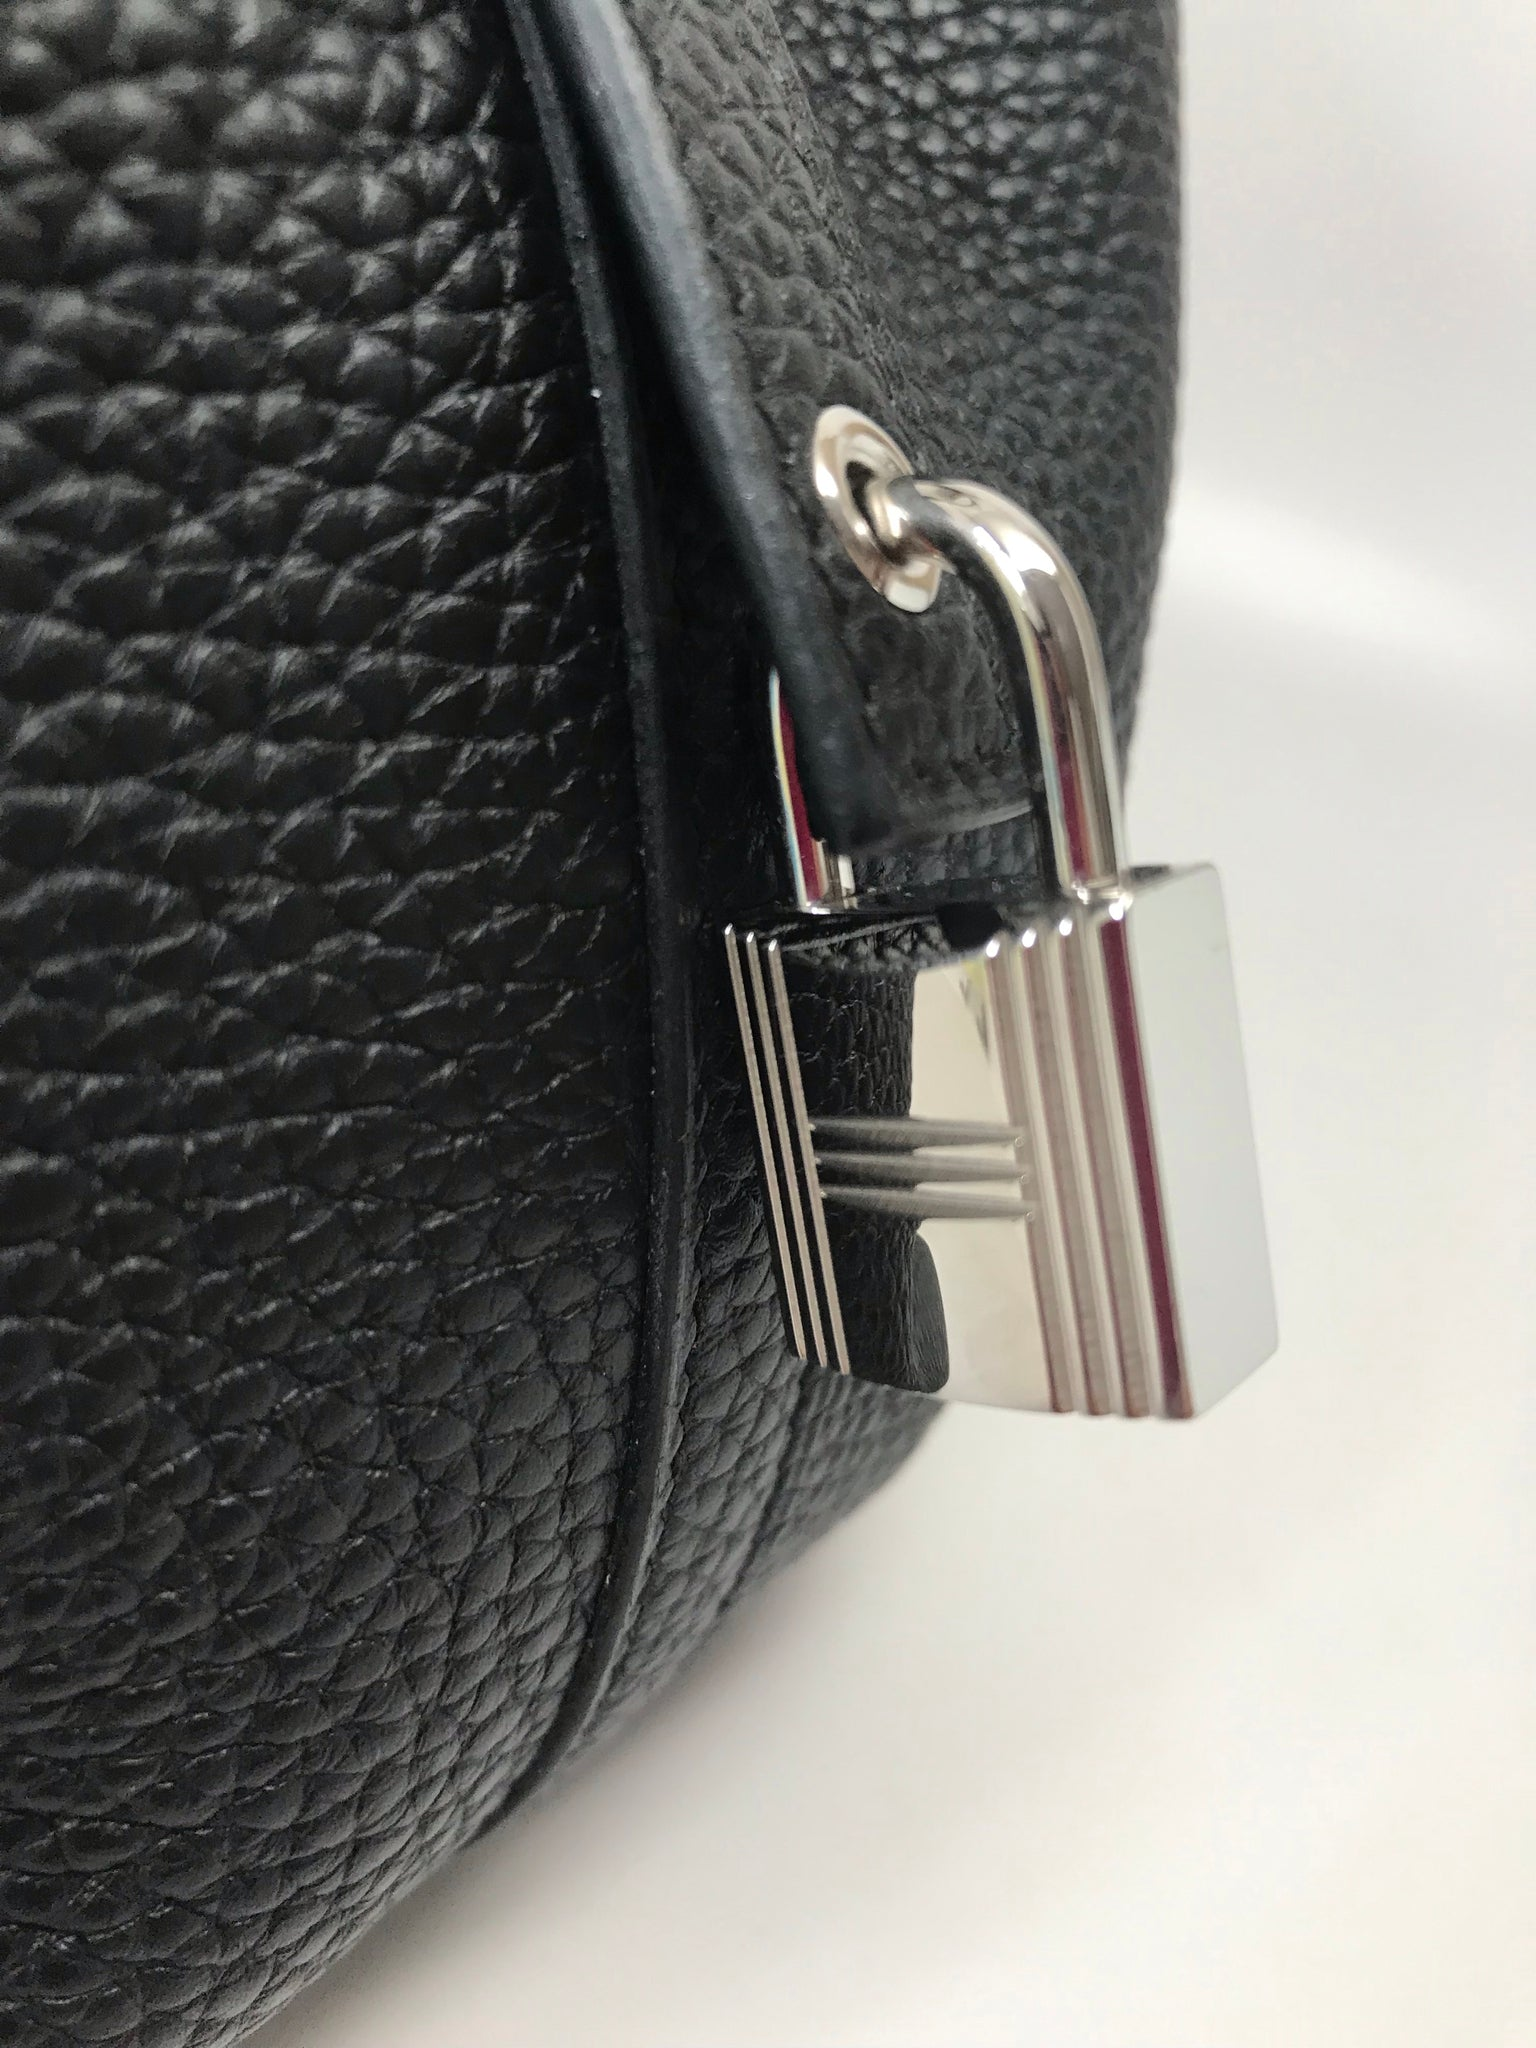 HERMES SAC PICOTIN LOCK BAG 22 IN BLACK CLEMENCE LEATHER